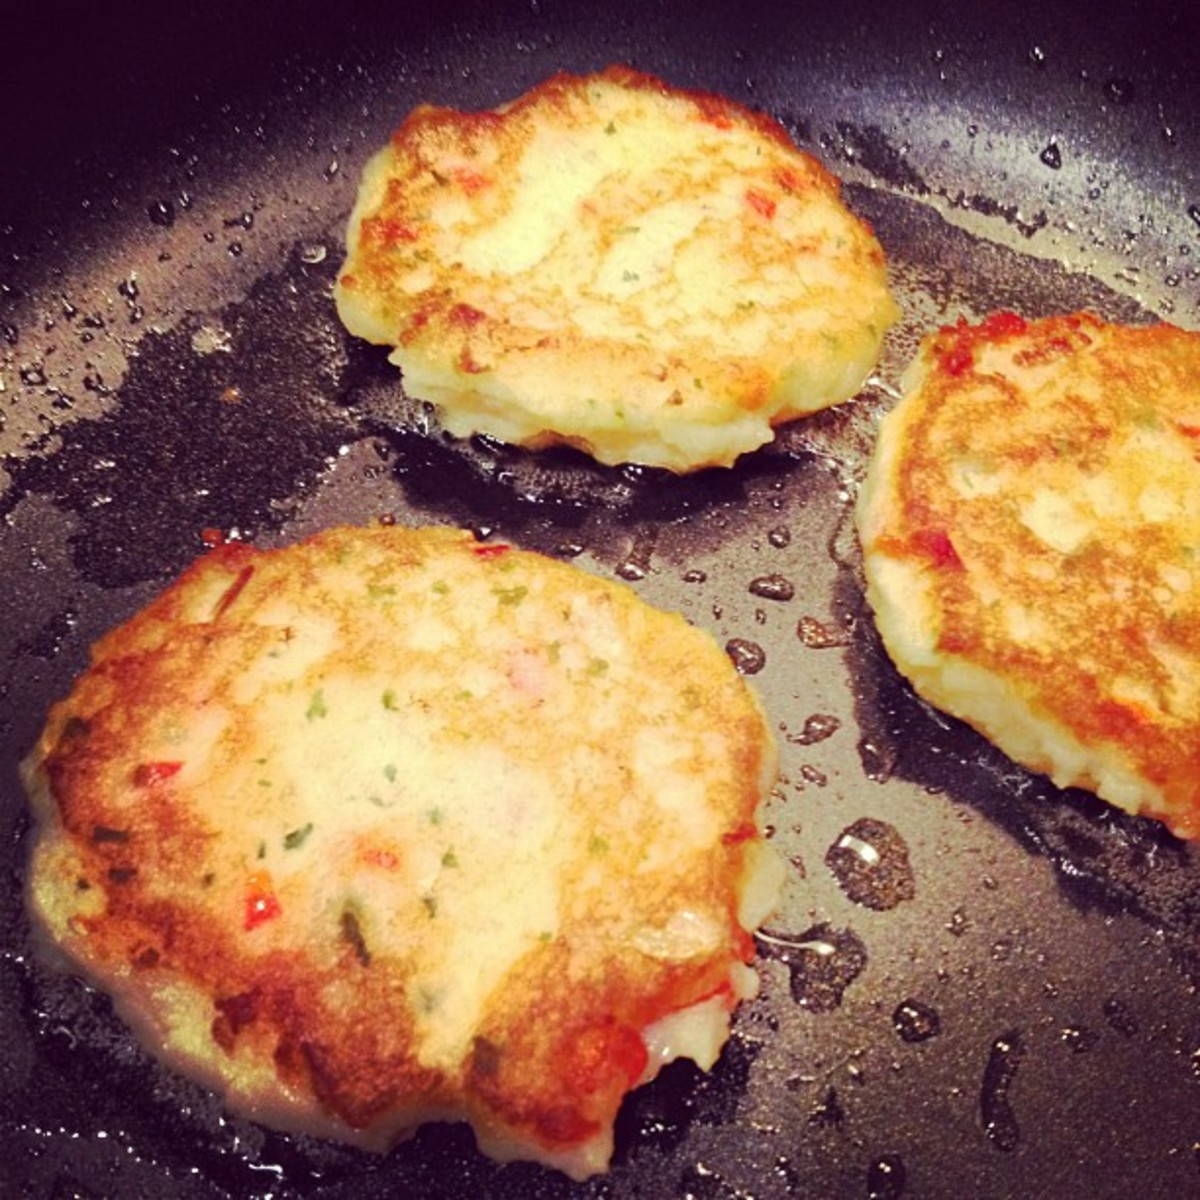 These potato cakes are almost ready to eat.